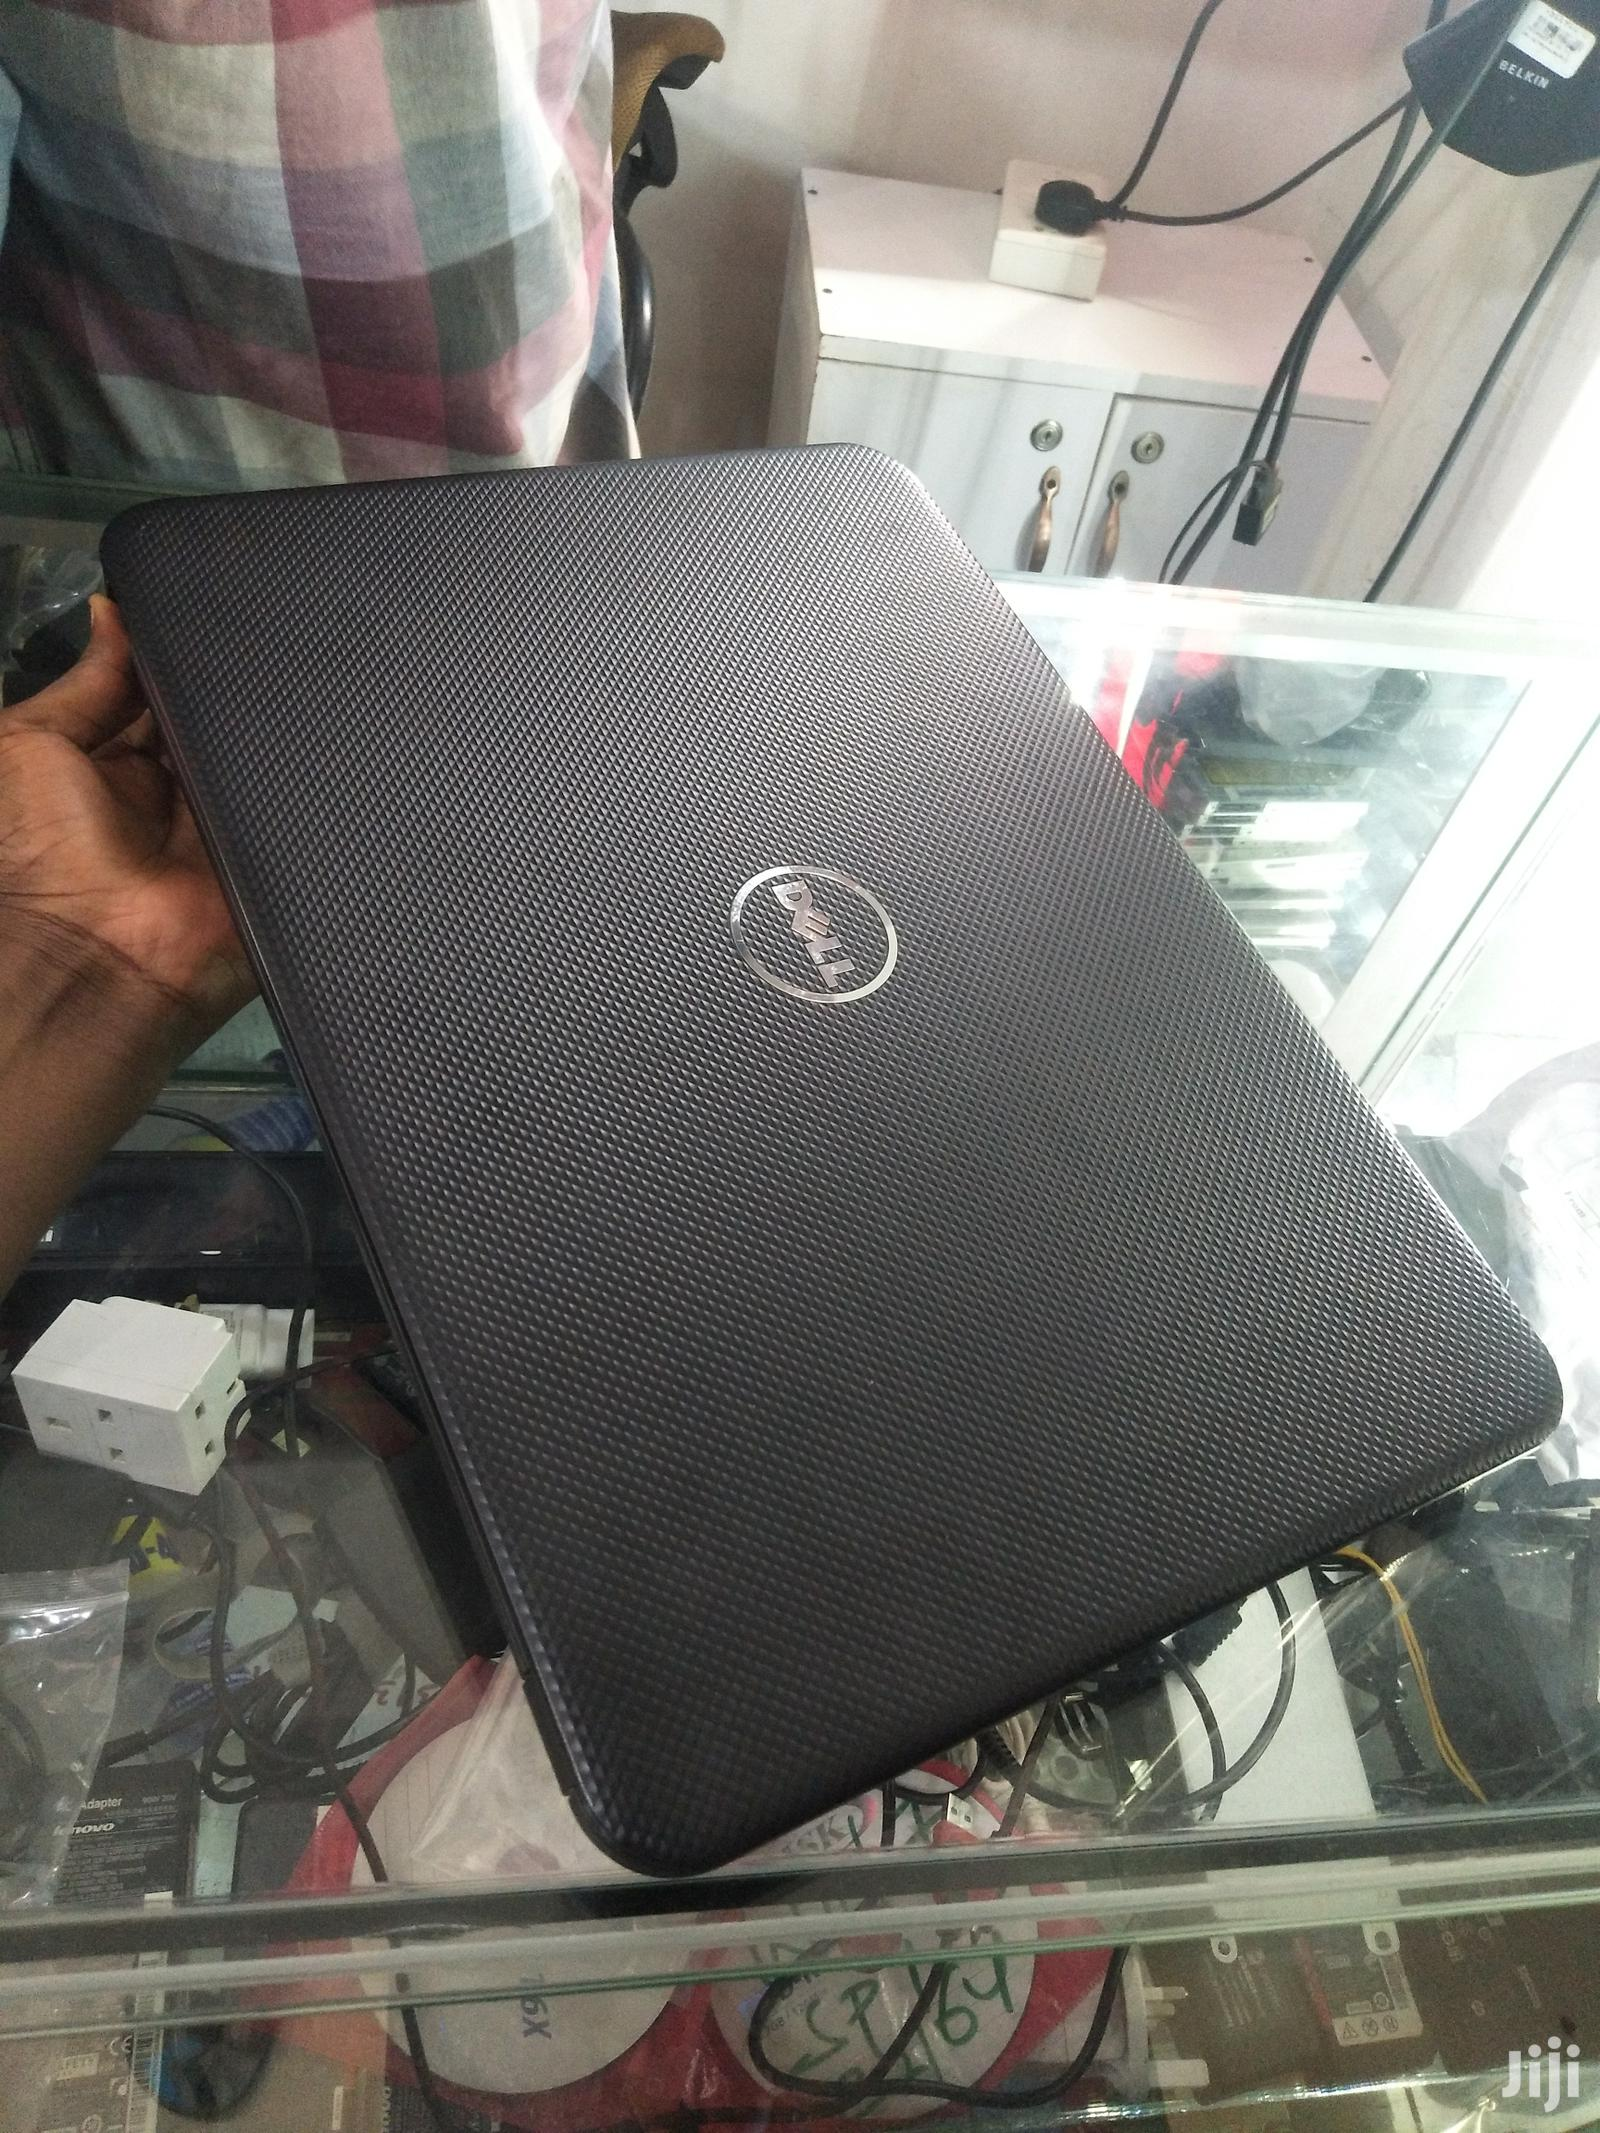 New Laptop Dell Inspiron 15 3541 4GB Intel Core i3 HDD 500GB | Laptops & Computers for sale in Kampala, Central Region, Uganda